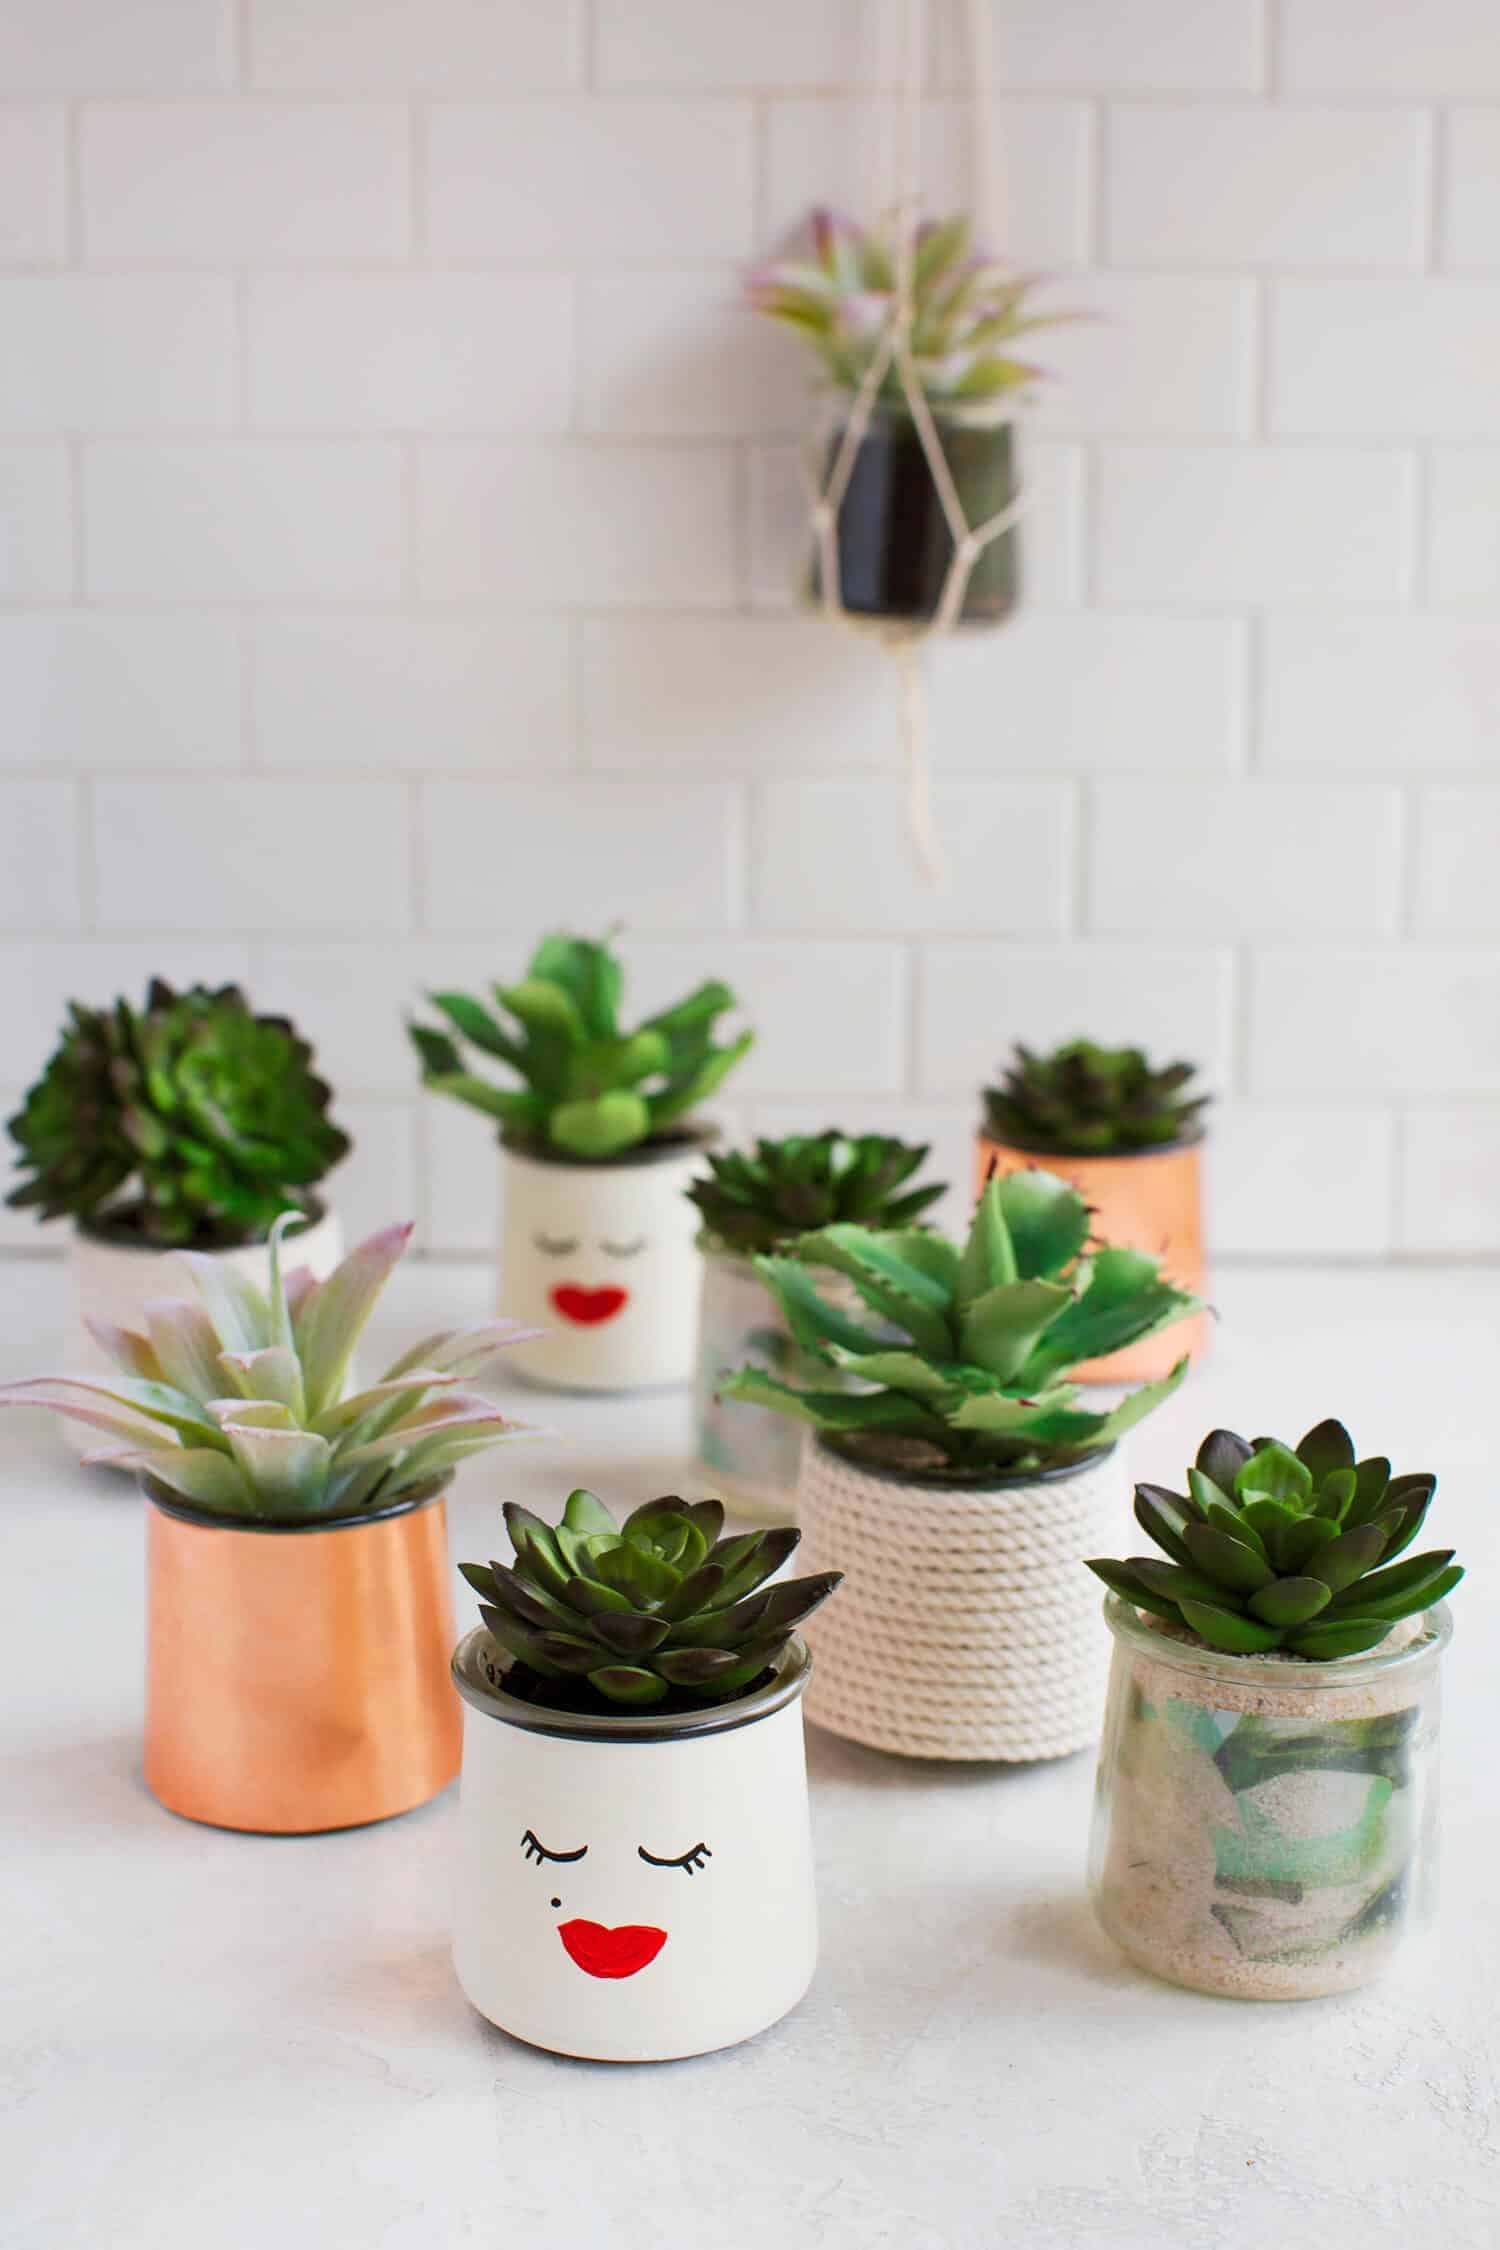 Succulent pot with recyclable materials